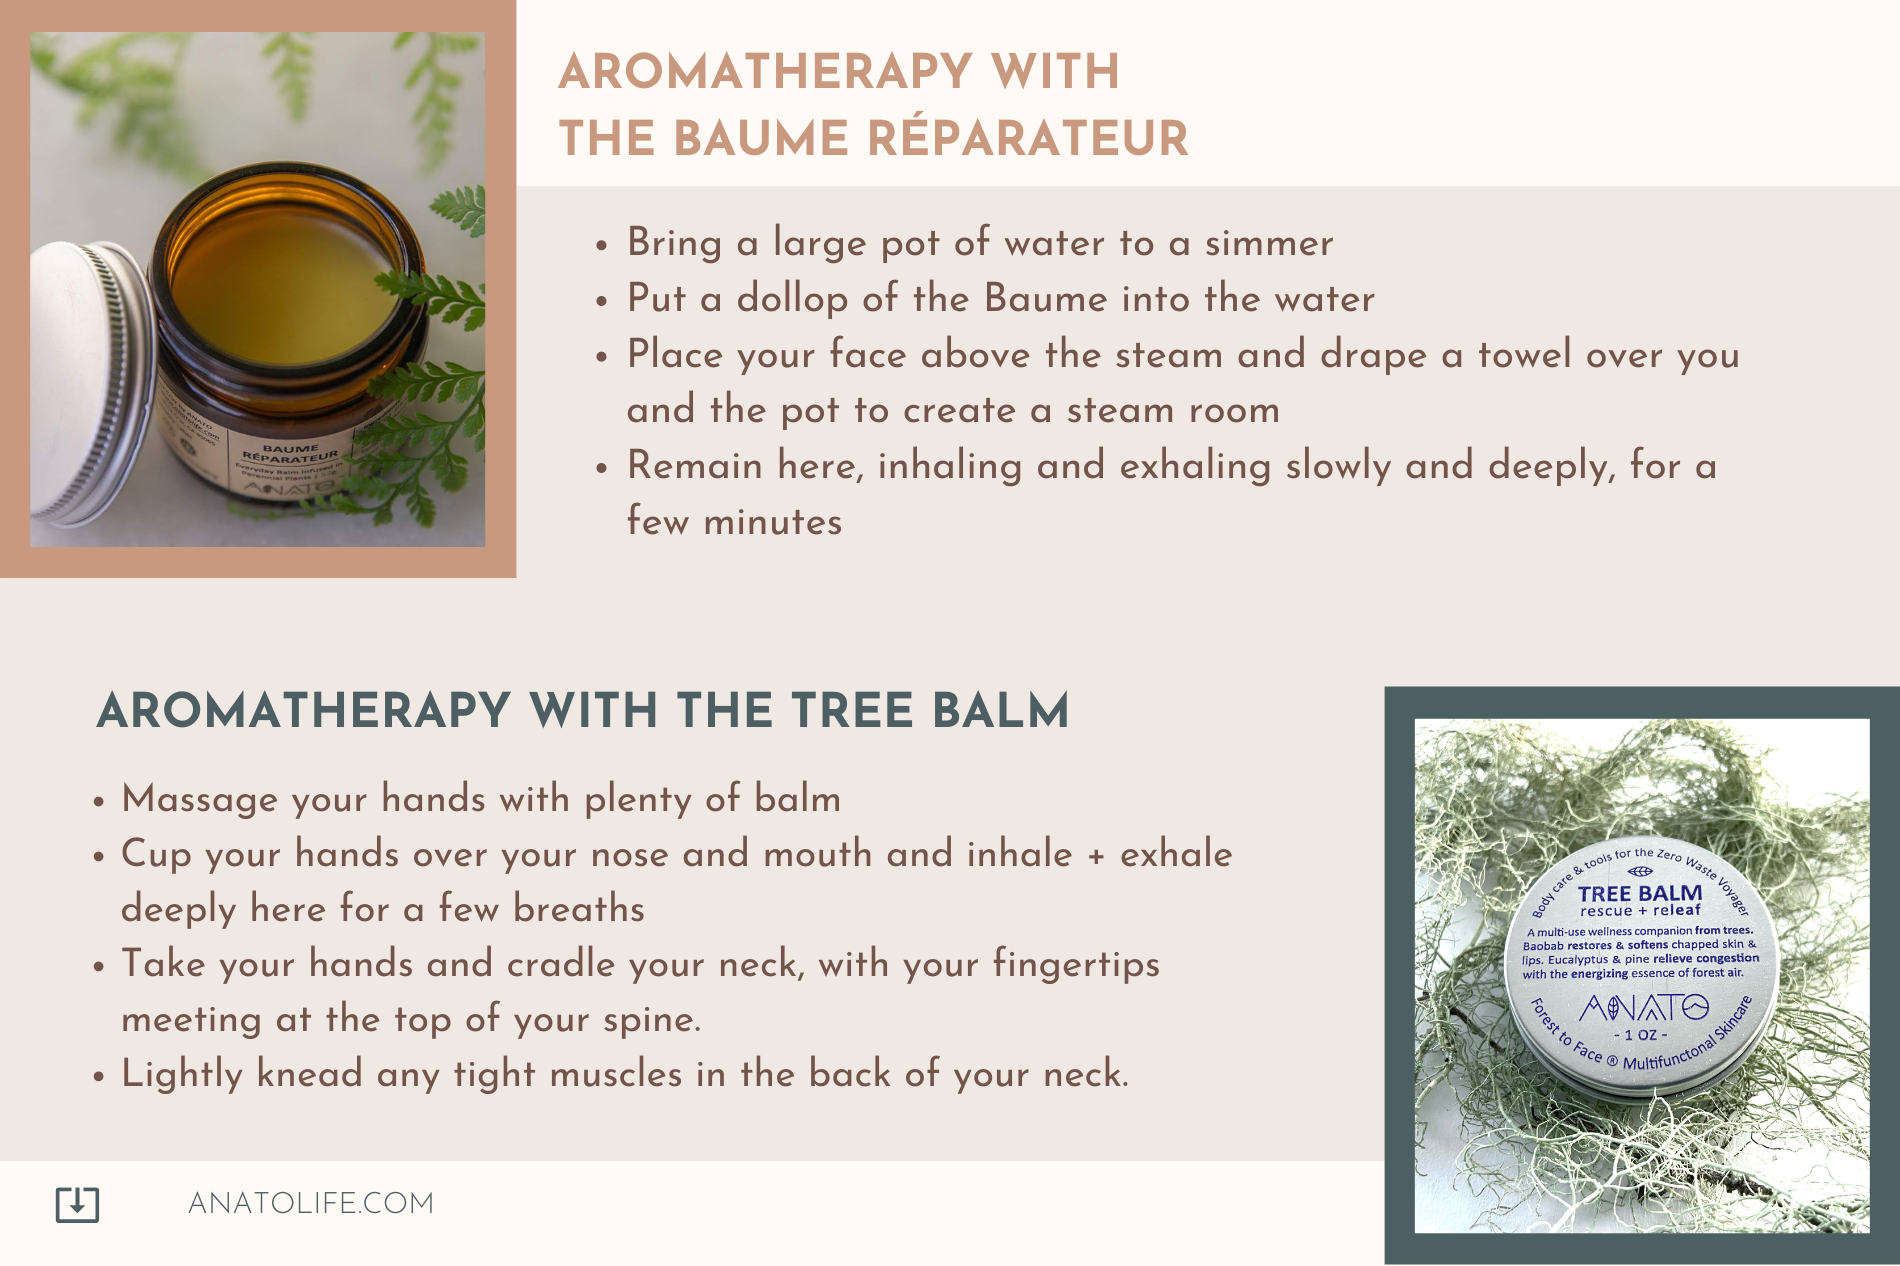 Aromatherapy with Anato tree Balm and Baume